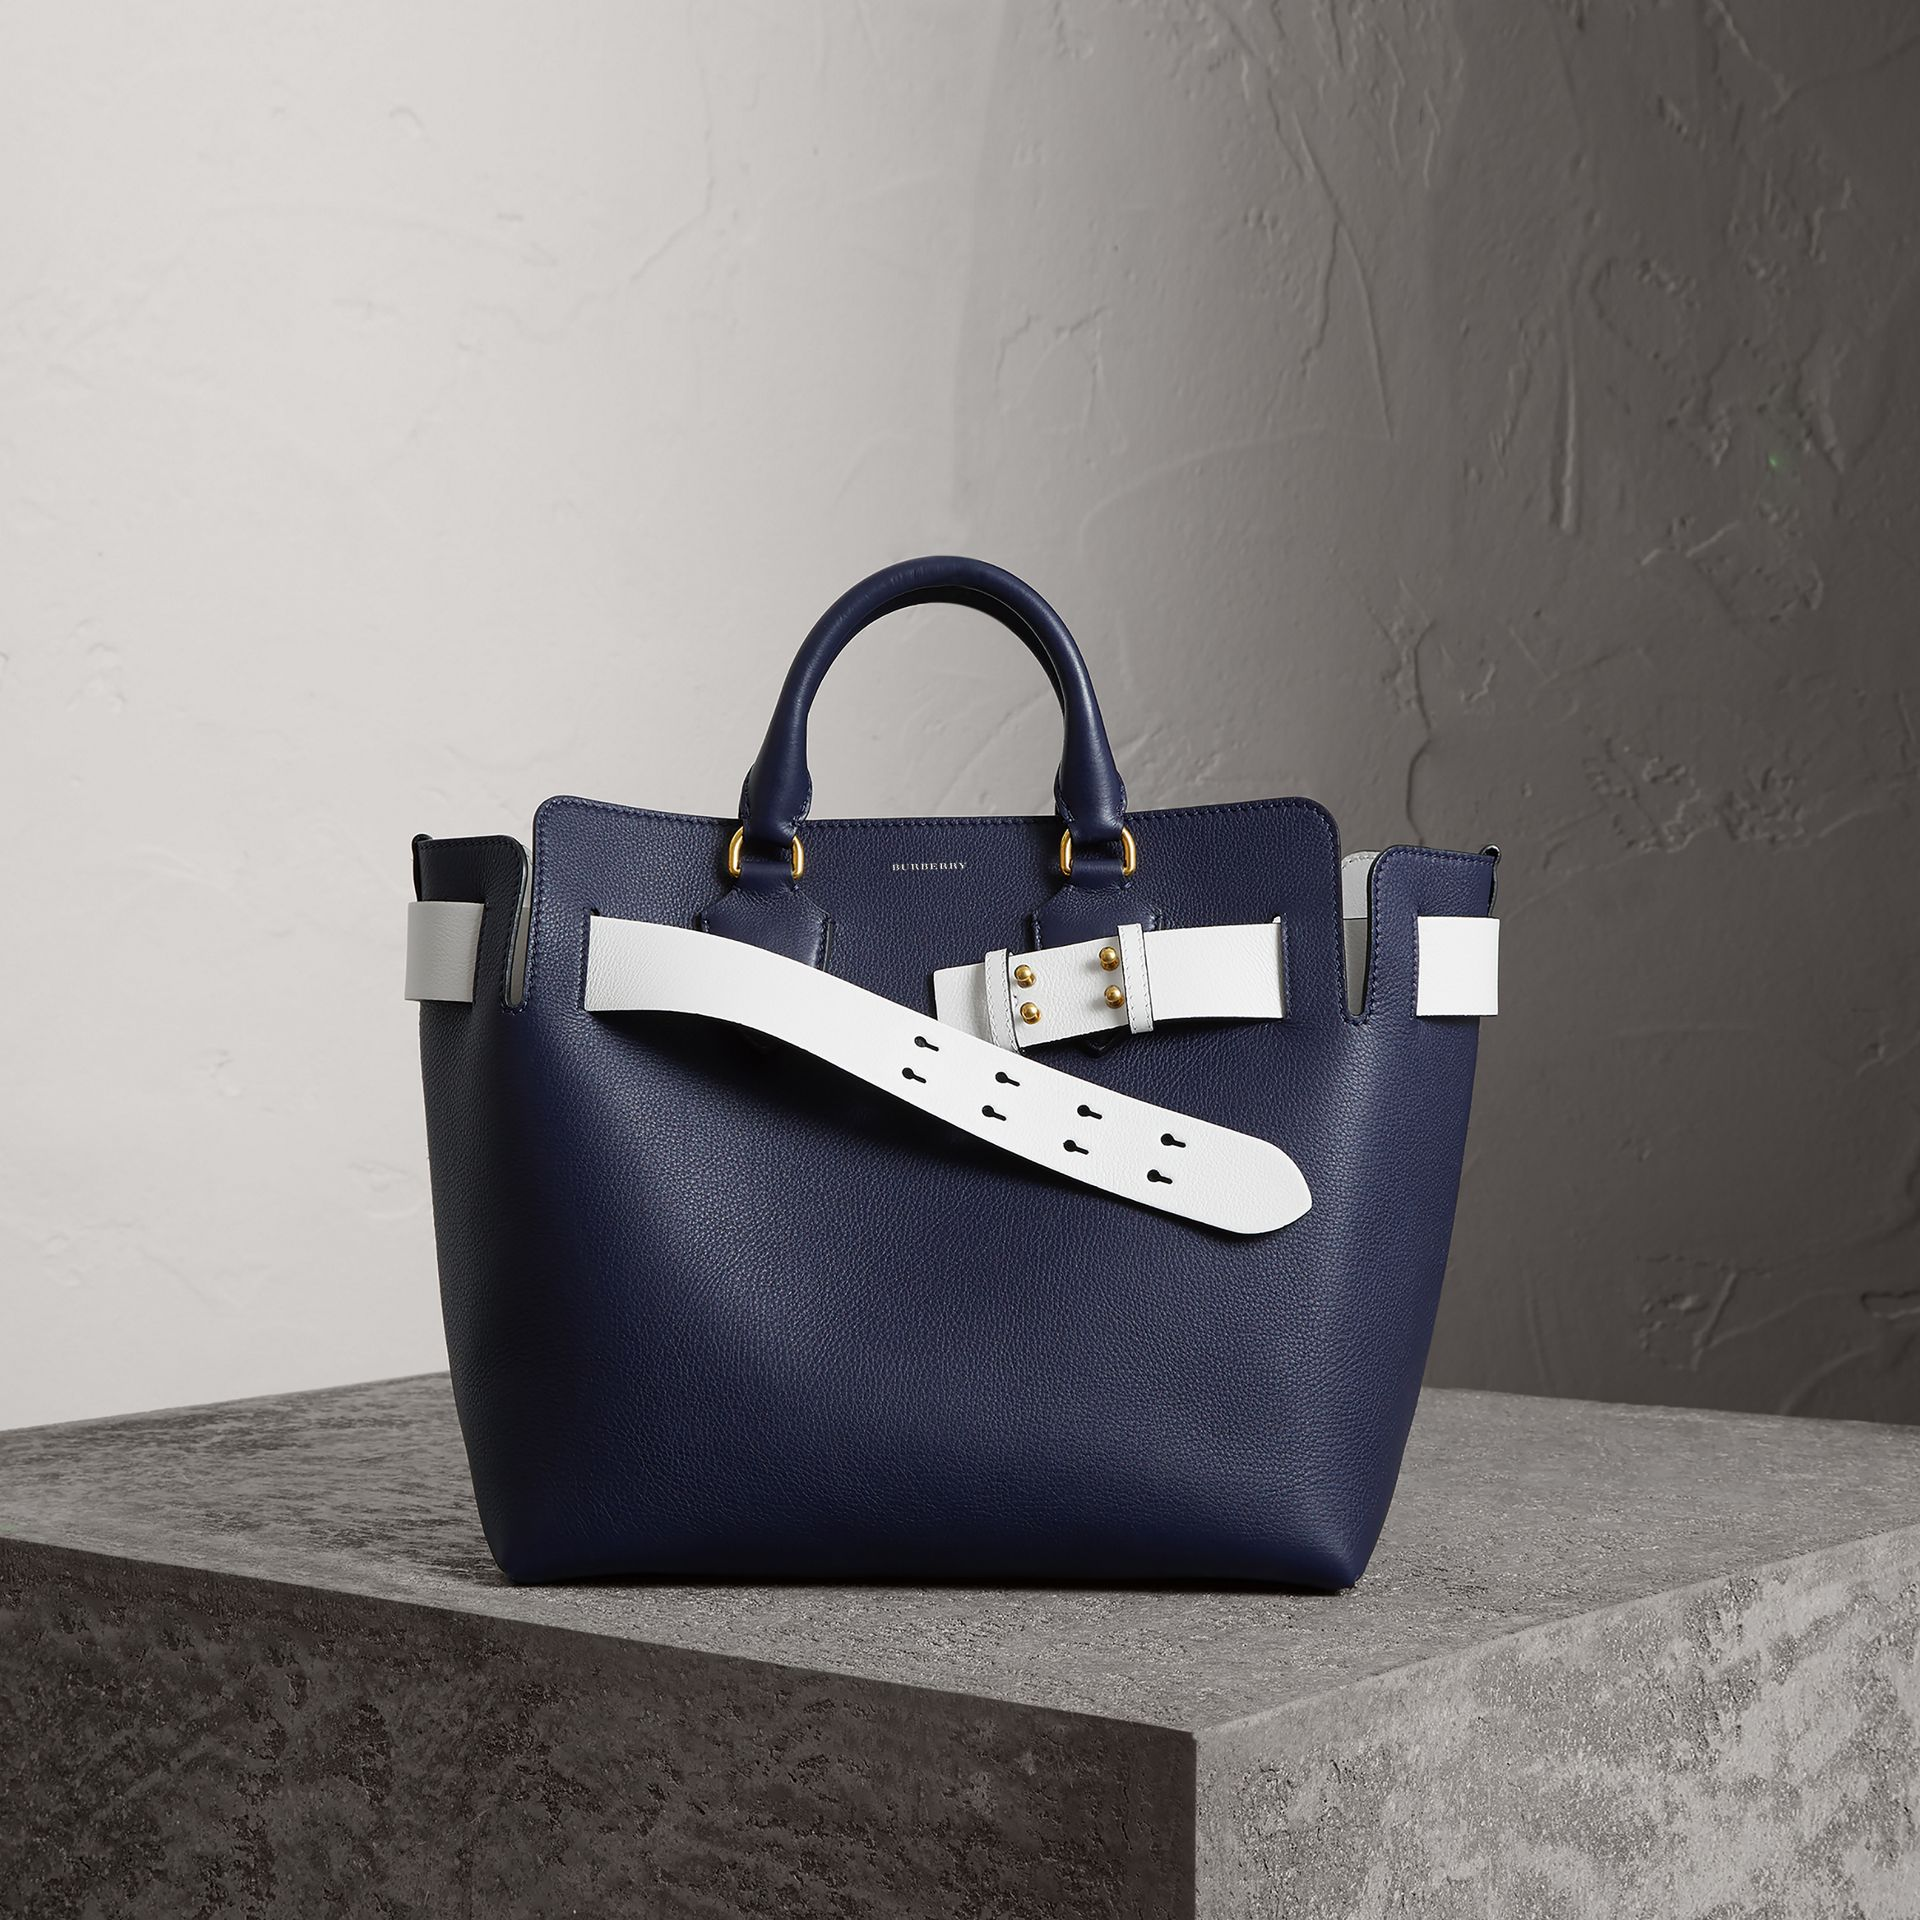 Sac The Belt moyen en cuir (Bleu Régence) - Femme | Burberry Canada - photo de la galerie 0